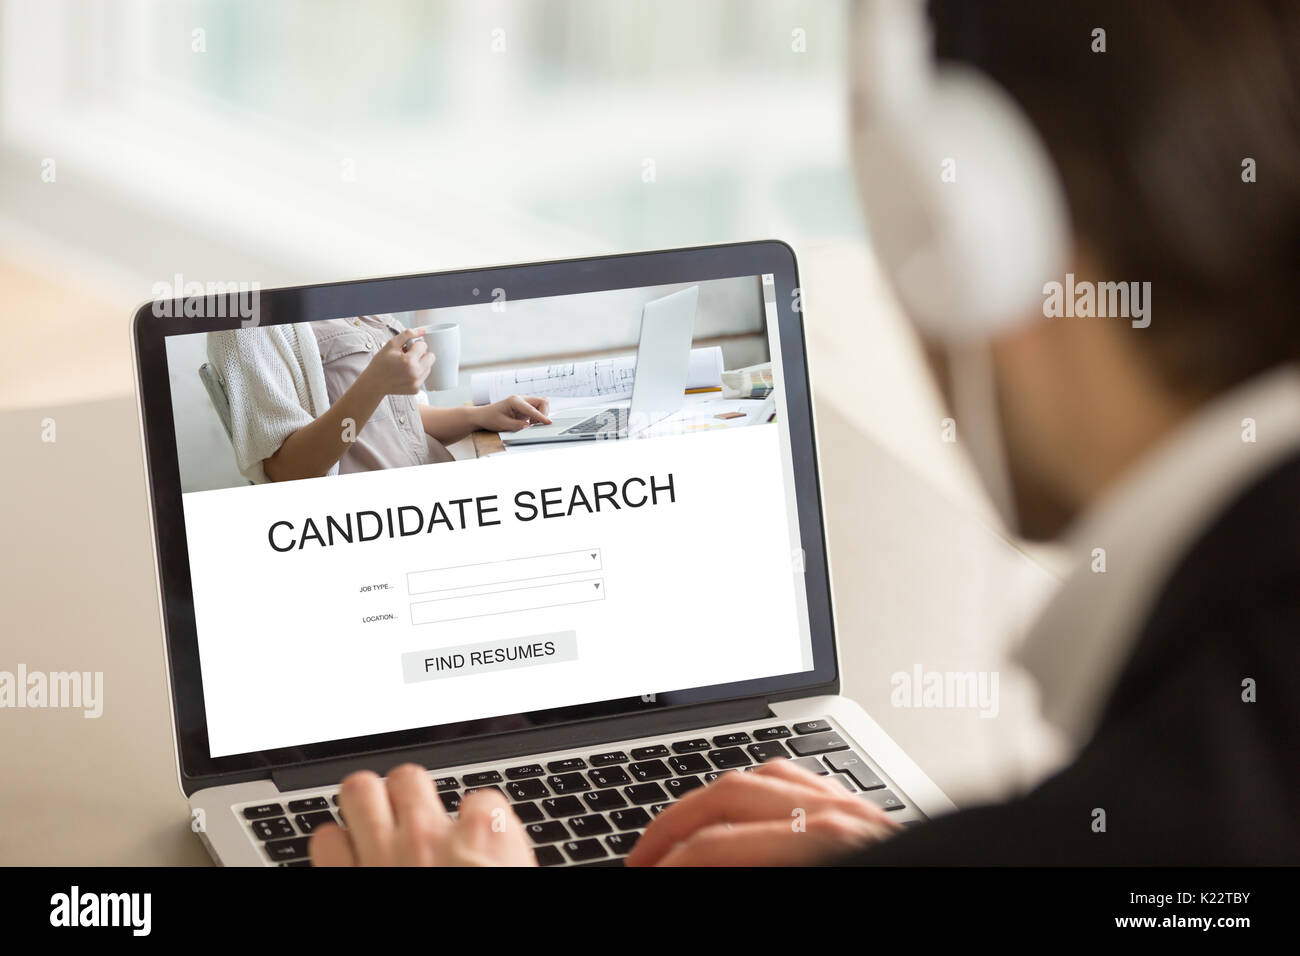 employer using laptop searching candidates find resumes online - Find Resumes Online